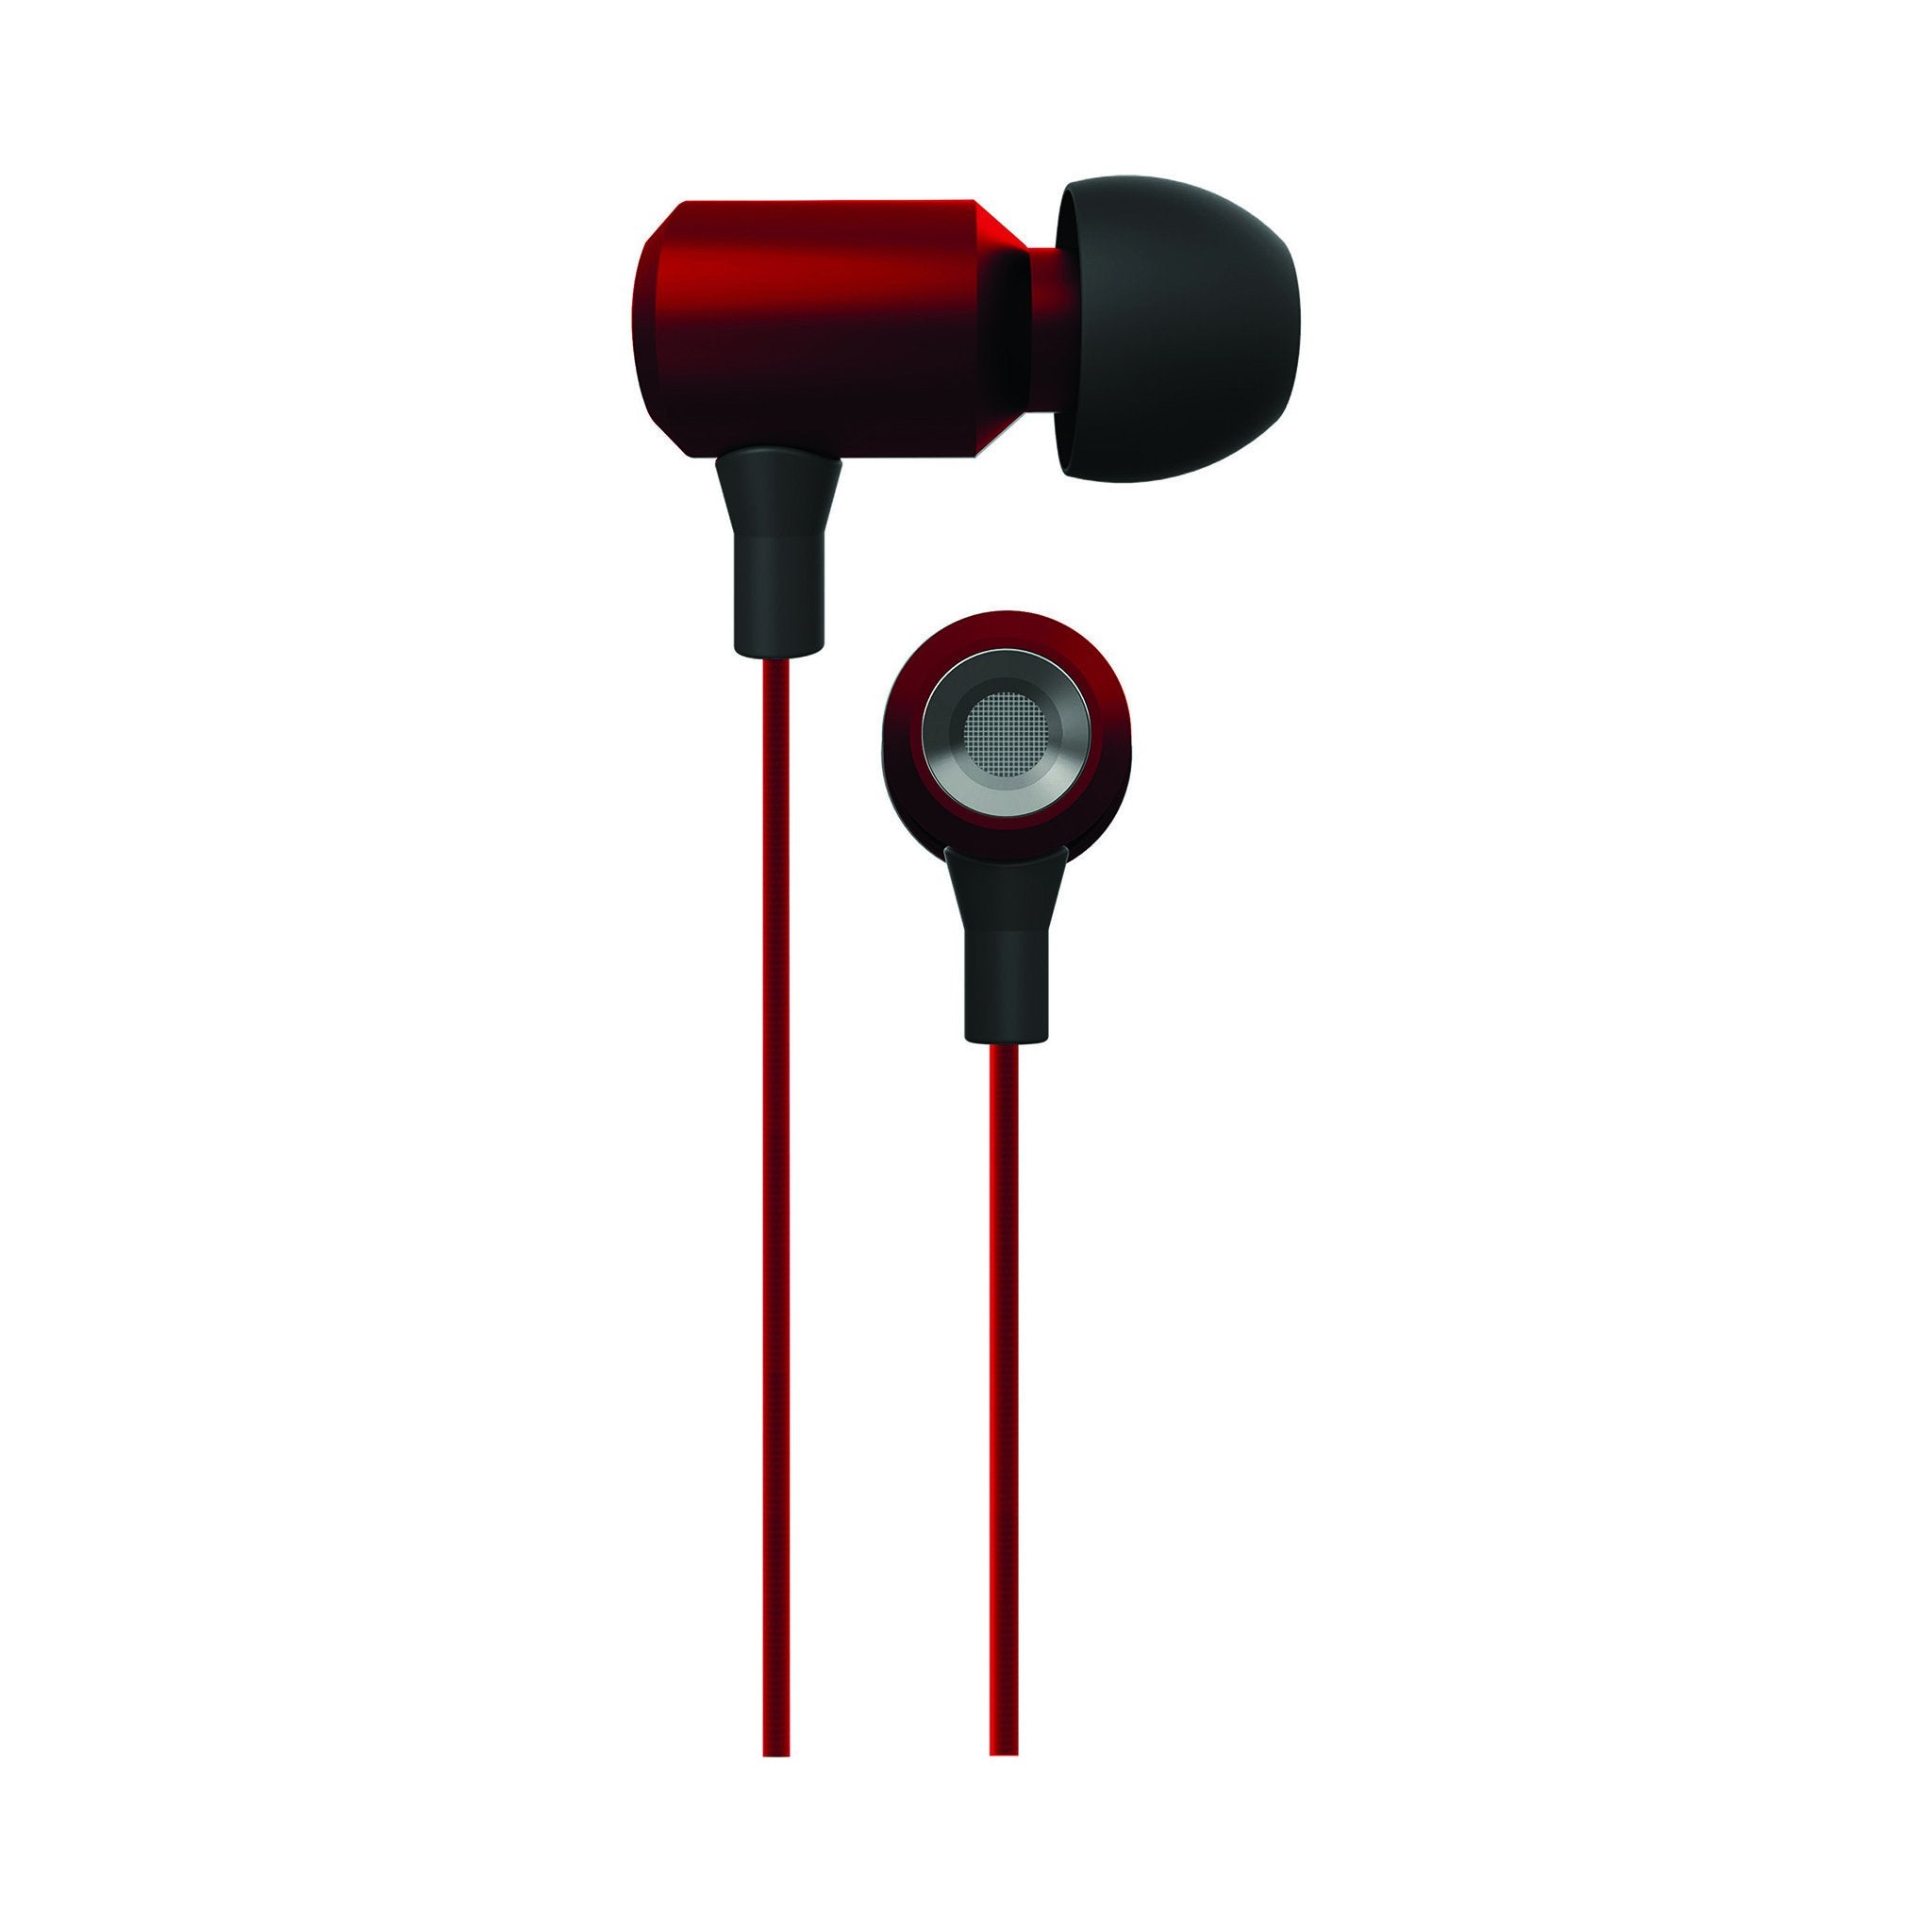 V3RG3 Metal Stereo Earbuds